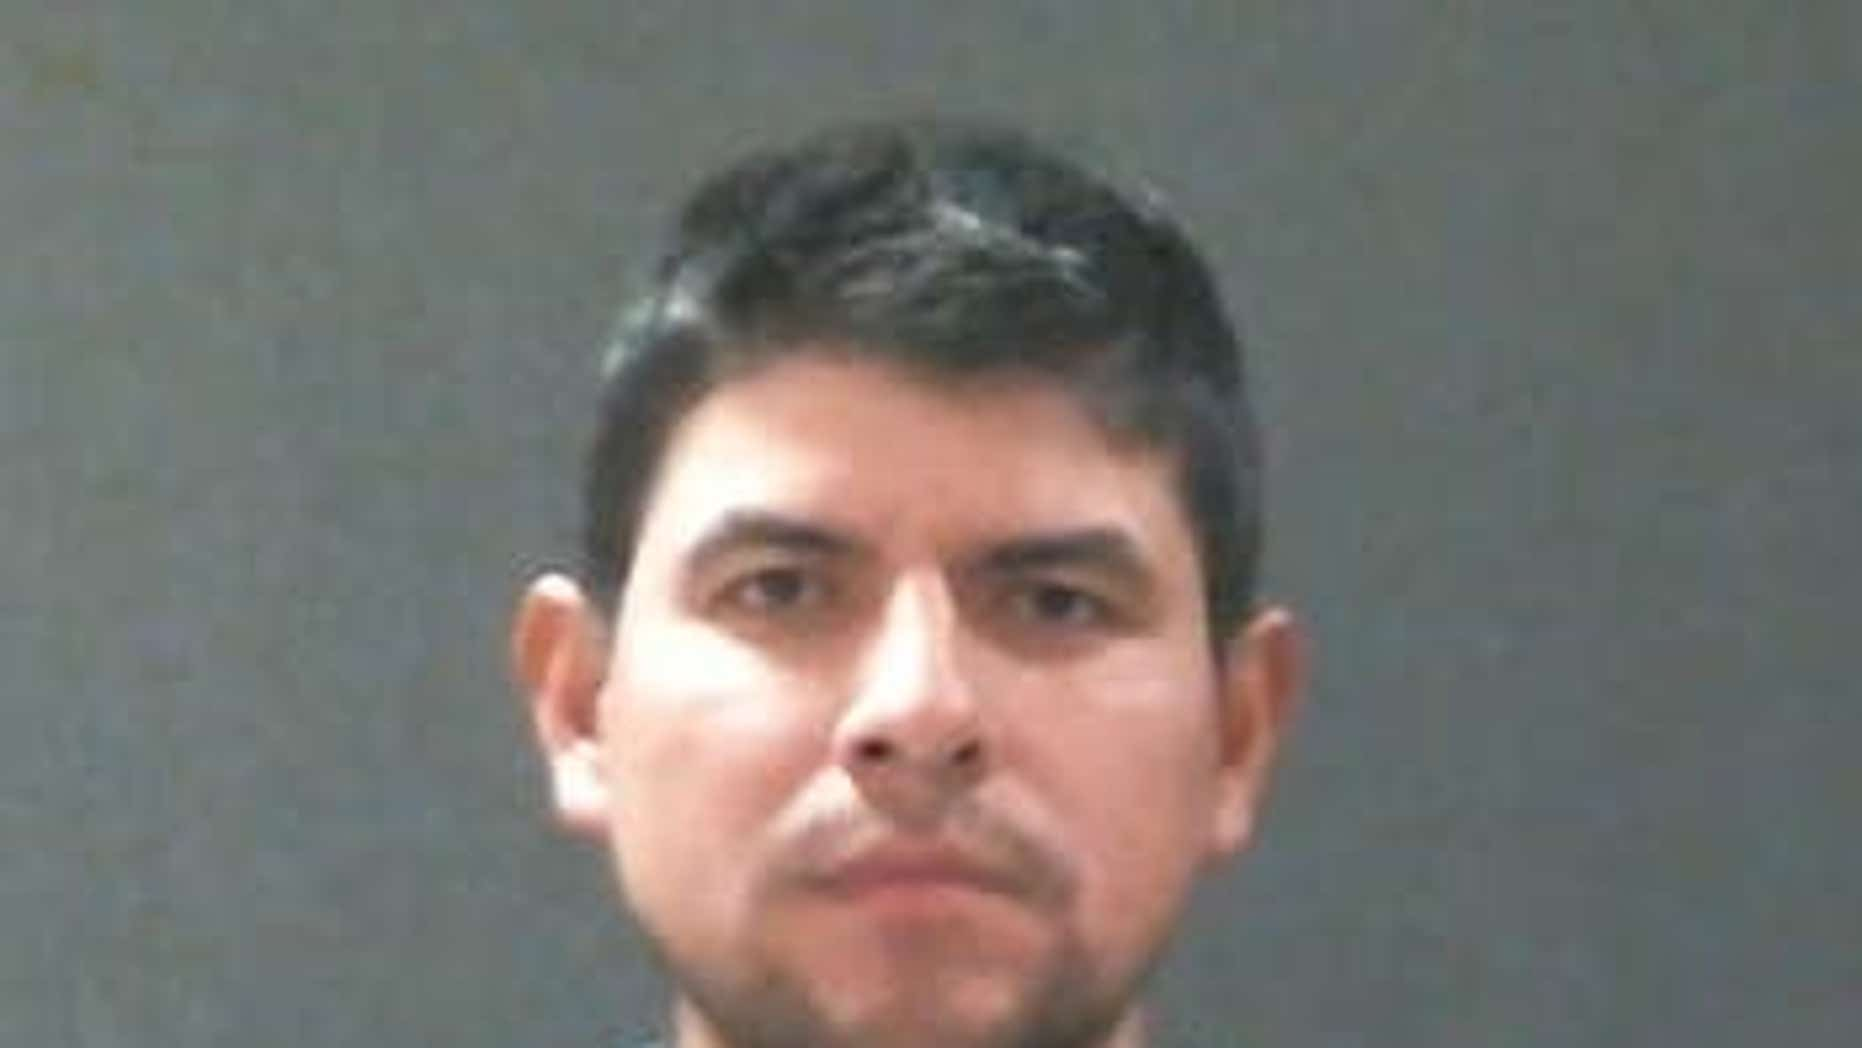 Roli Aroldo Lopez-Sanchez, 37 has been sentenced to 60 years in prison without eligibility for parole or good time credit for impregnating an 11-year-old last year.